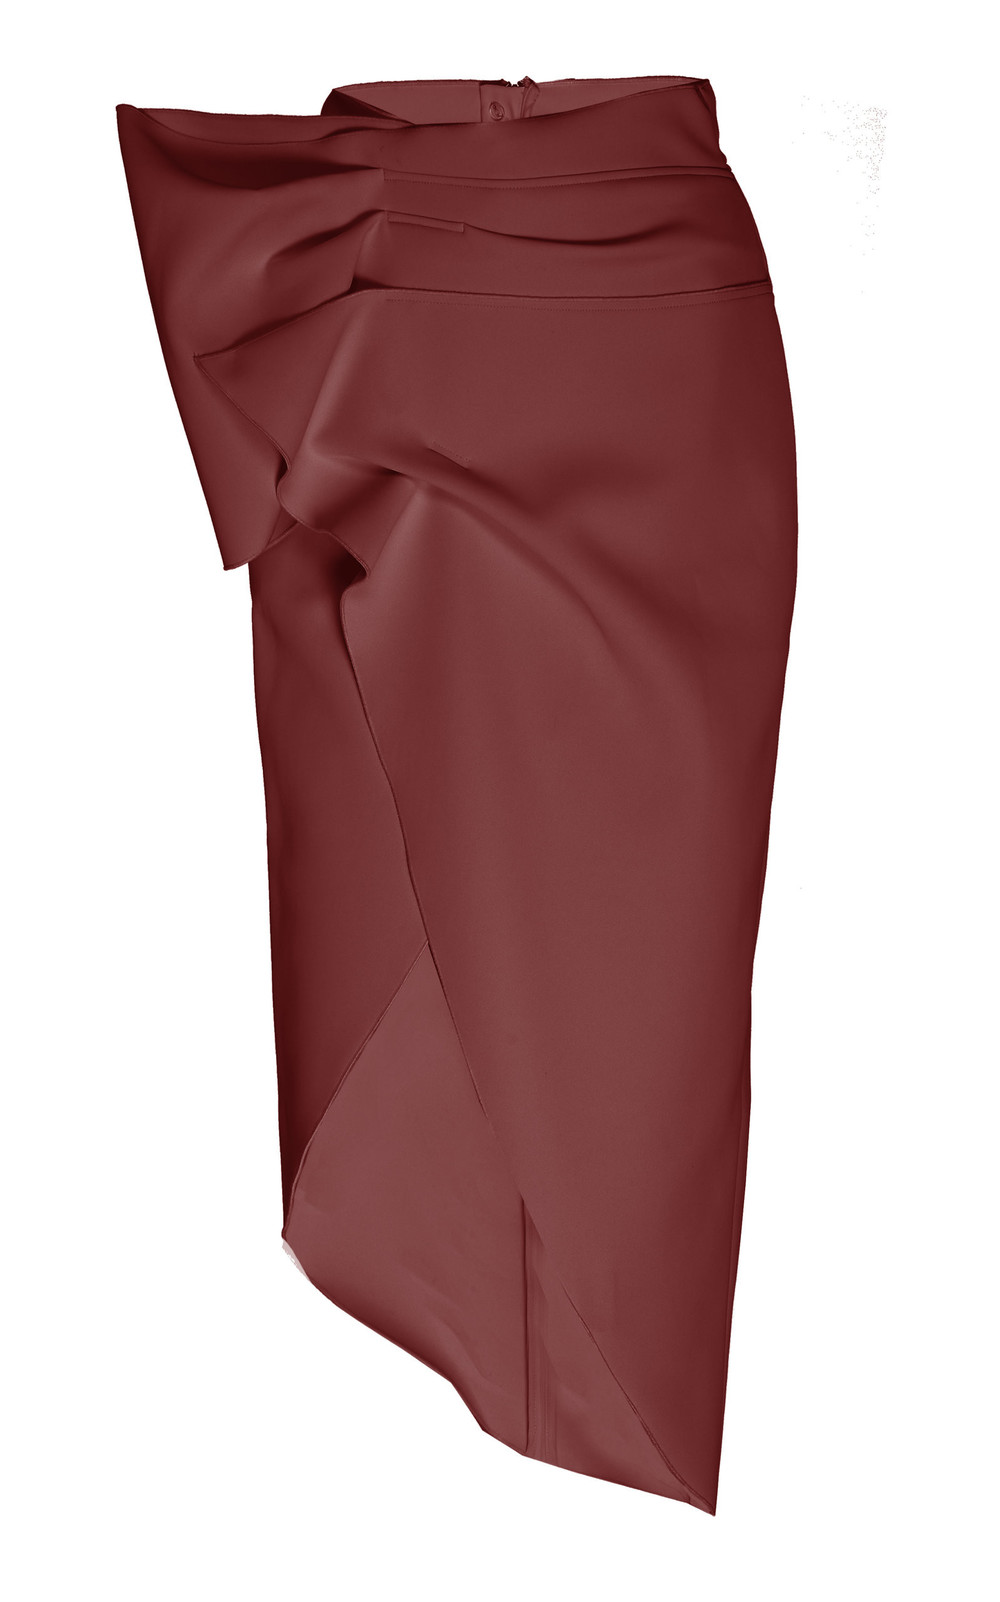 Acler Mancroft Folded Hip Midi Skirt in burgundy